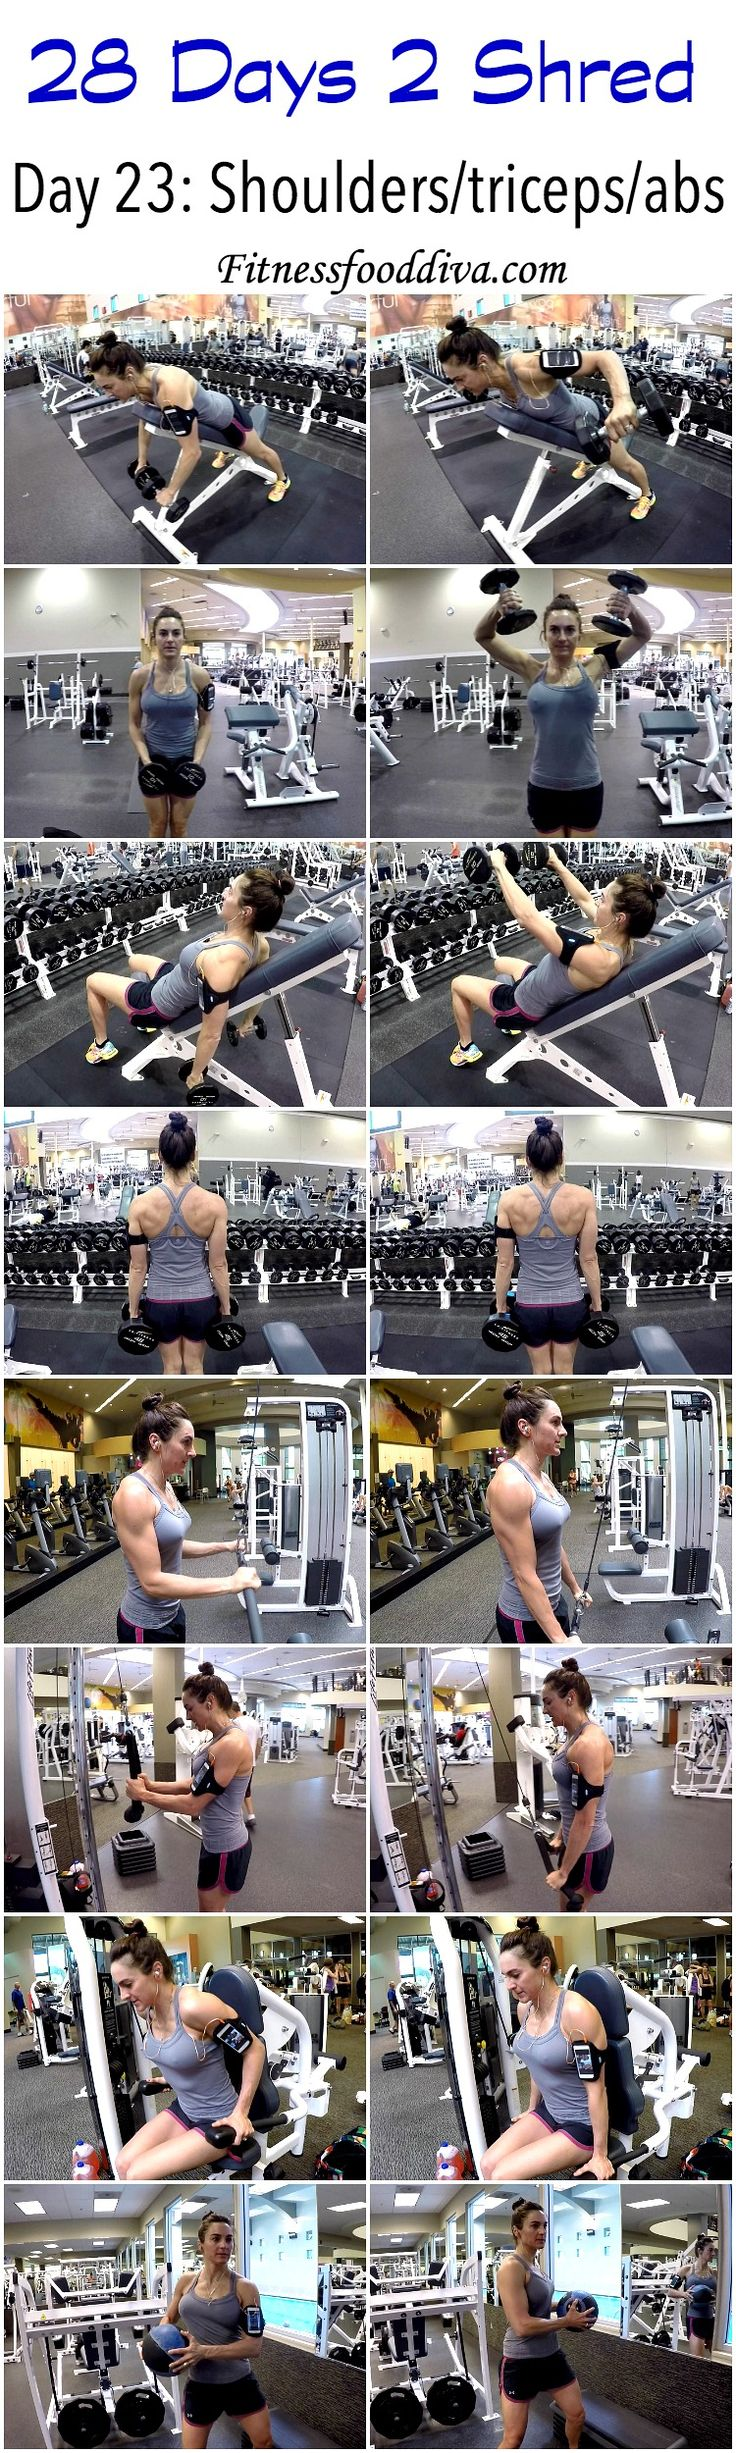 Day 23: shoulders/triceps/abs workout/video